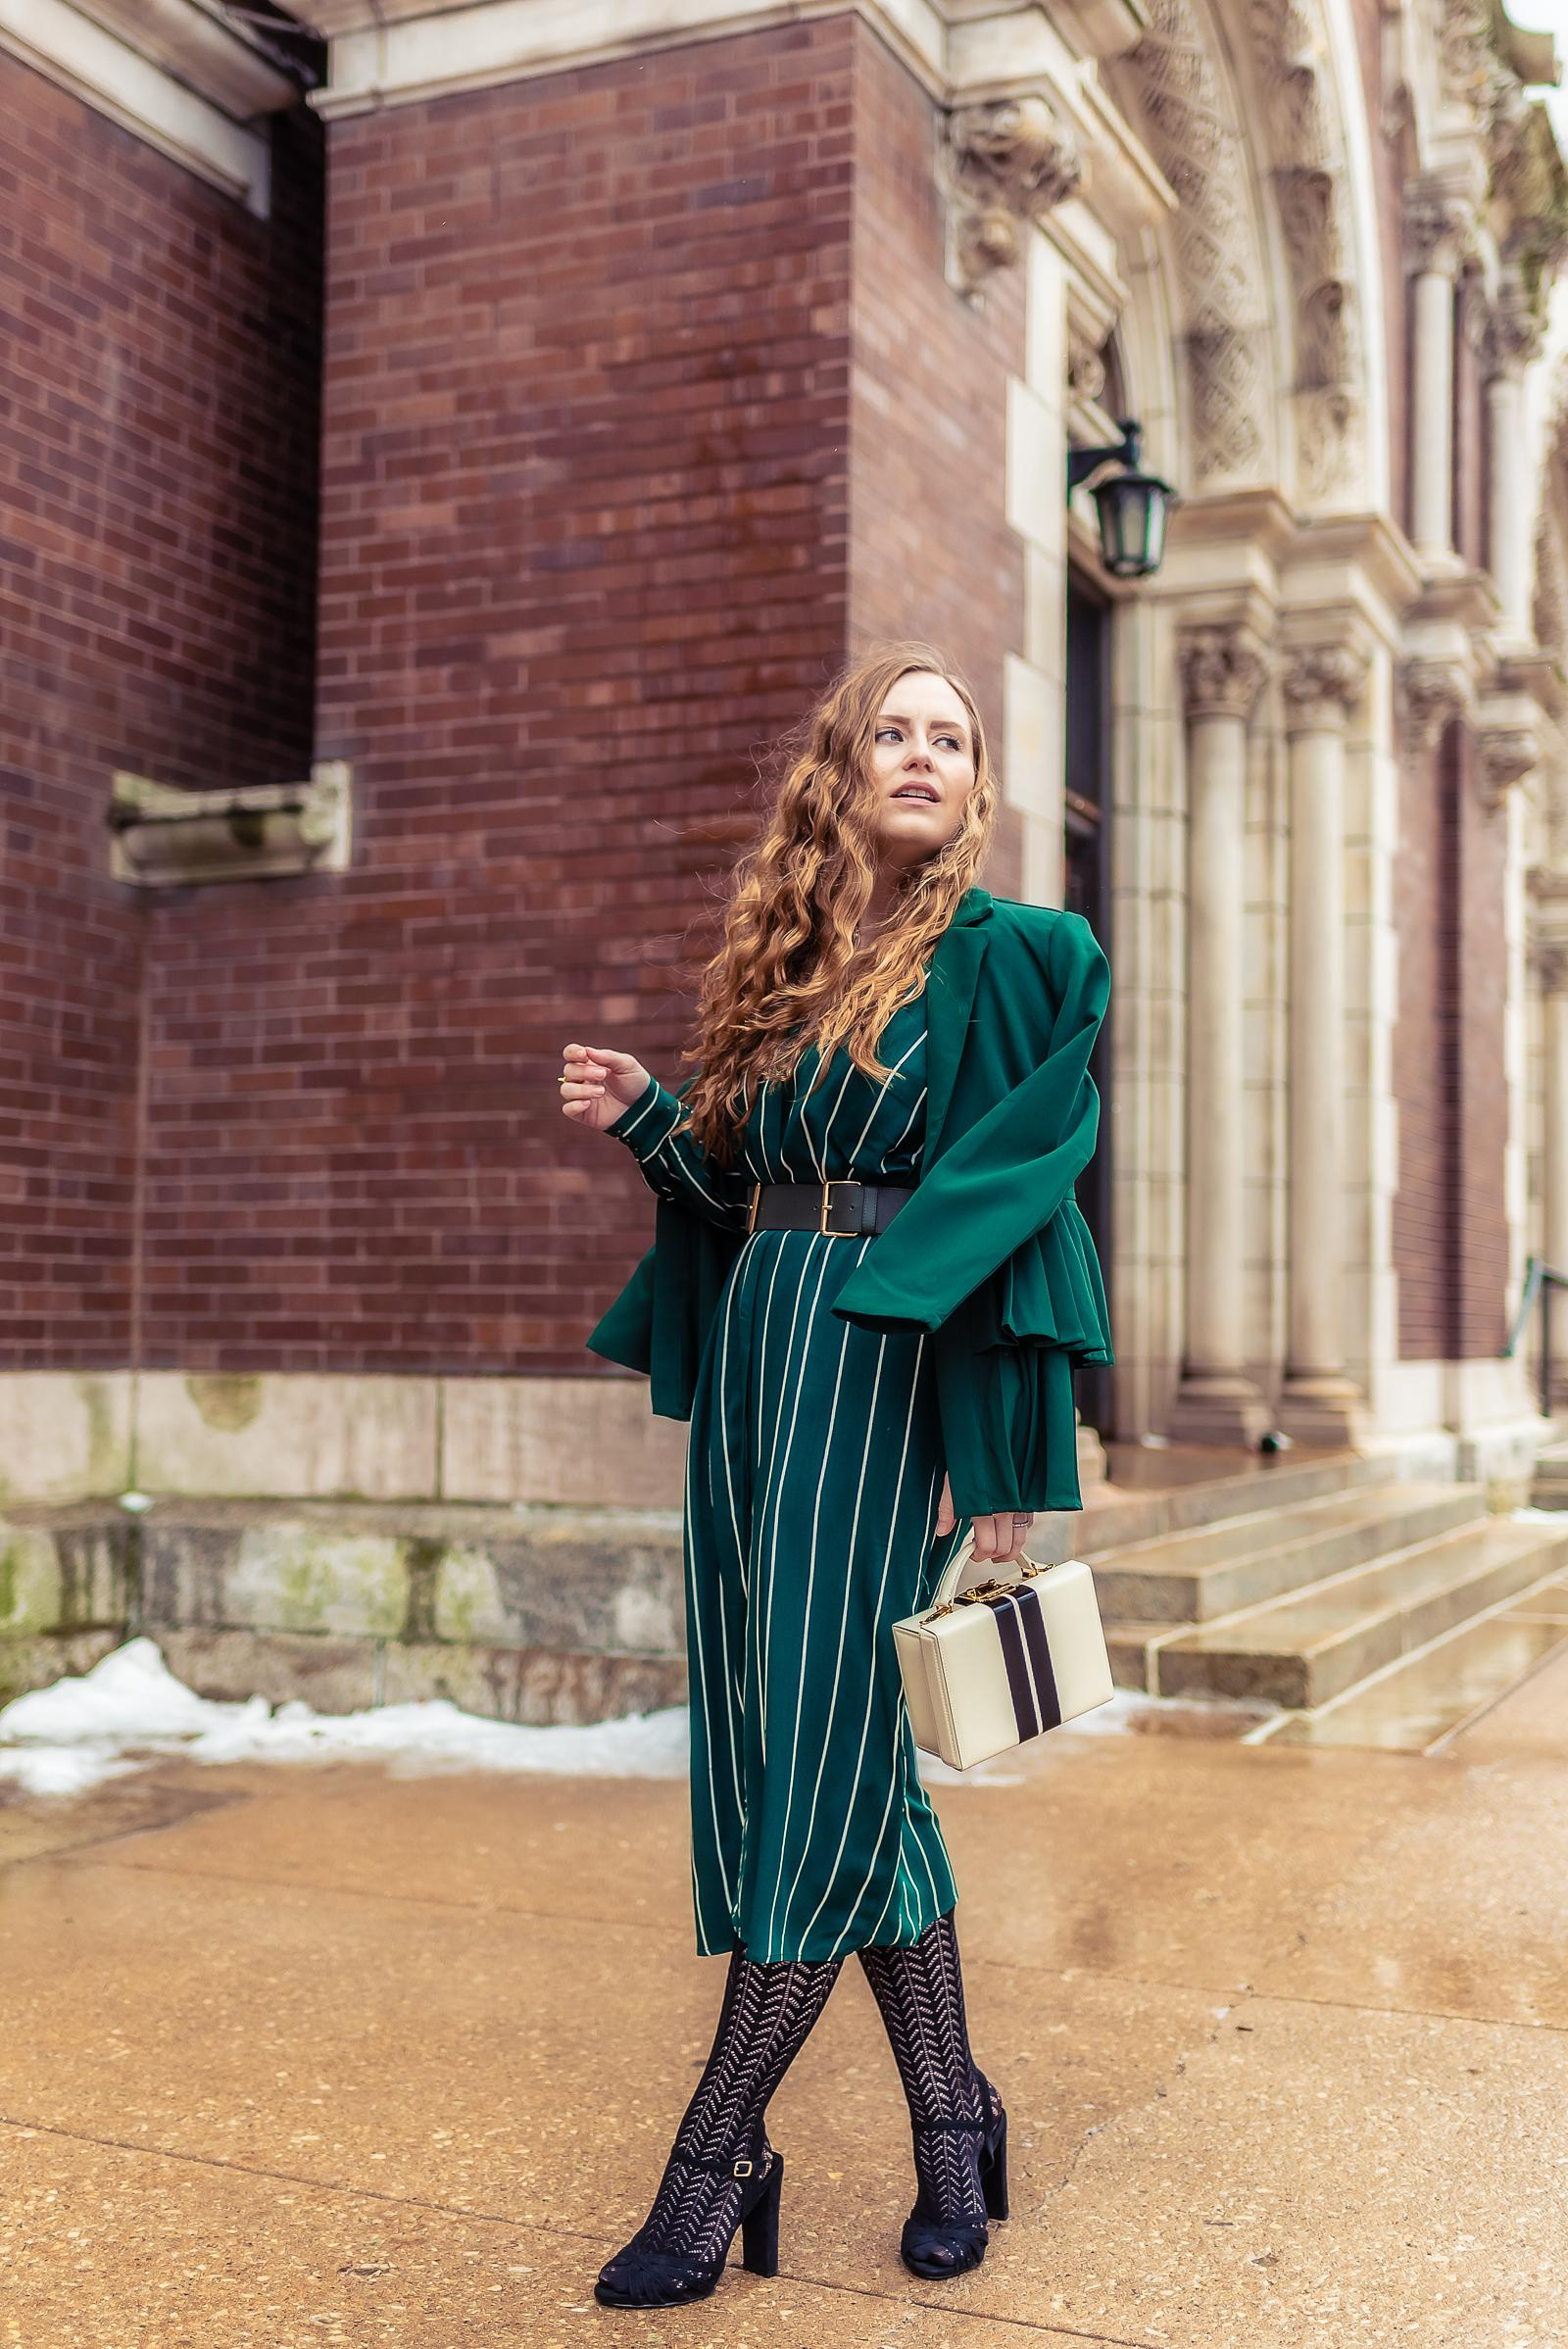 Green Monochrome Outfit for St. Patrick's Day